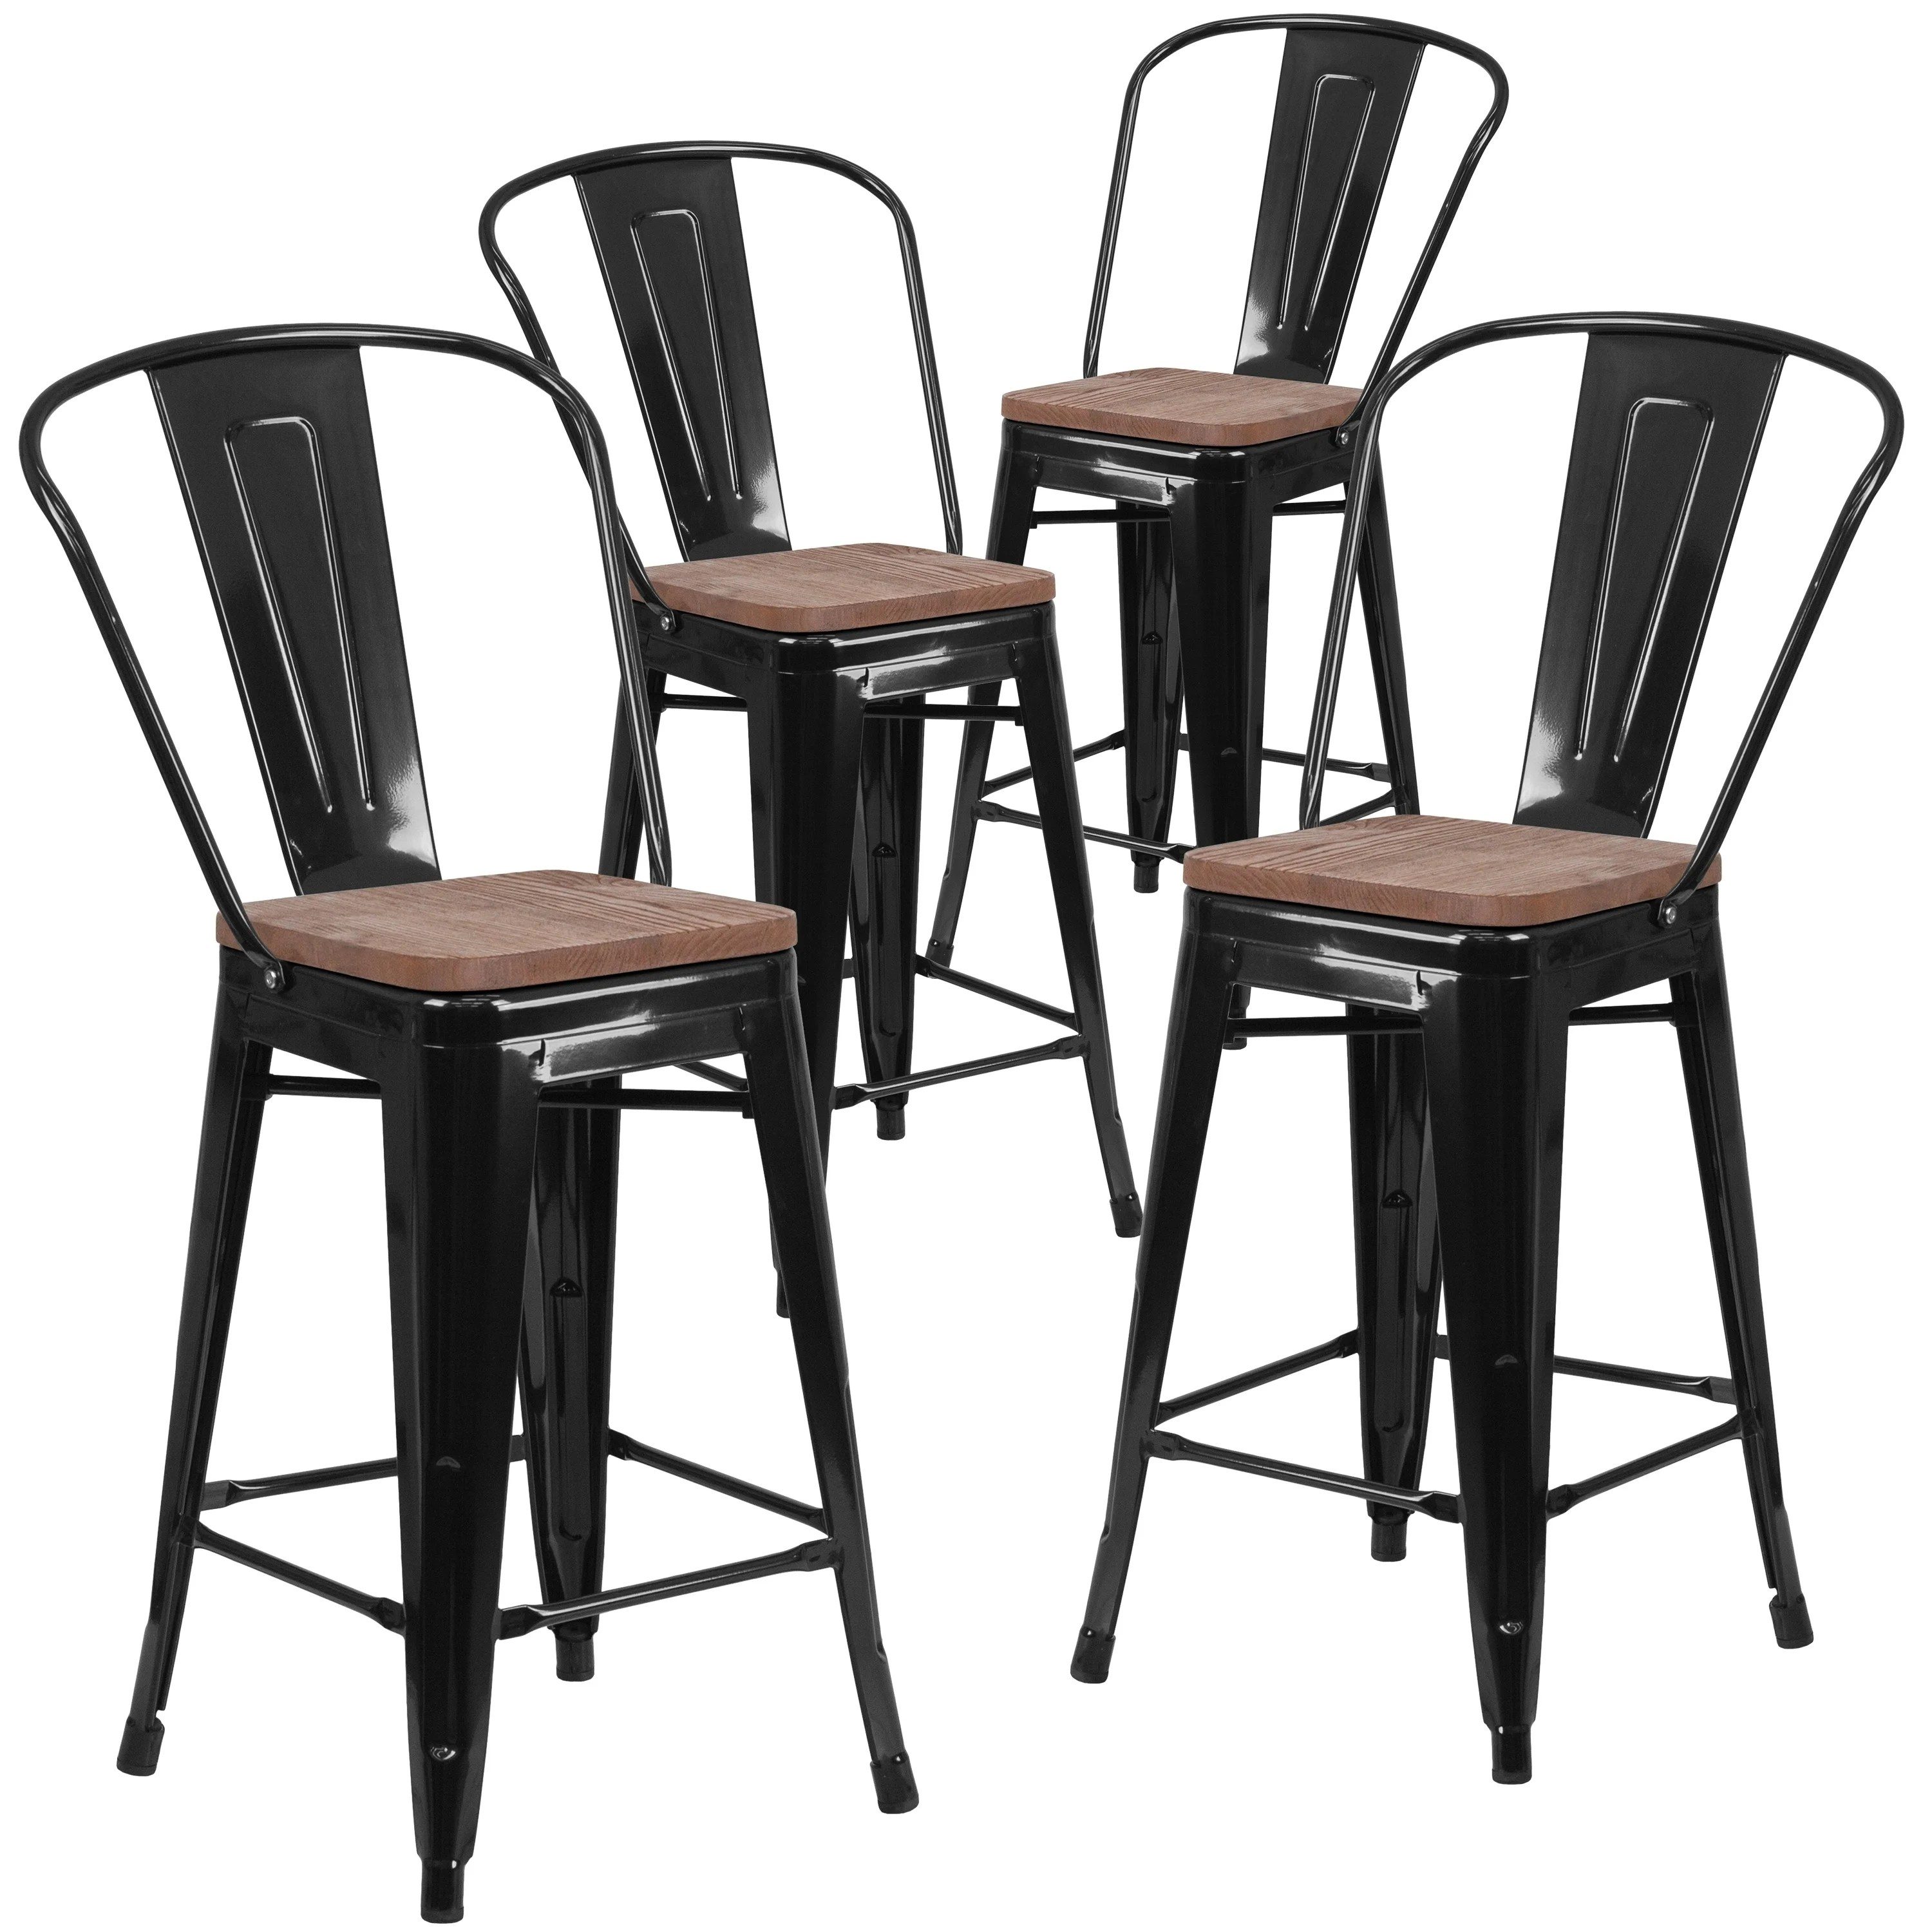 counter height chairs with back cushions for teak steamer shop 4 pk 24 high metal stool and wood seat